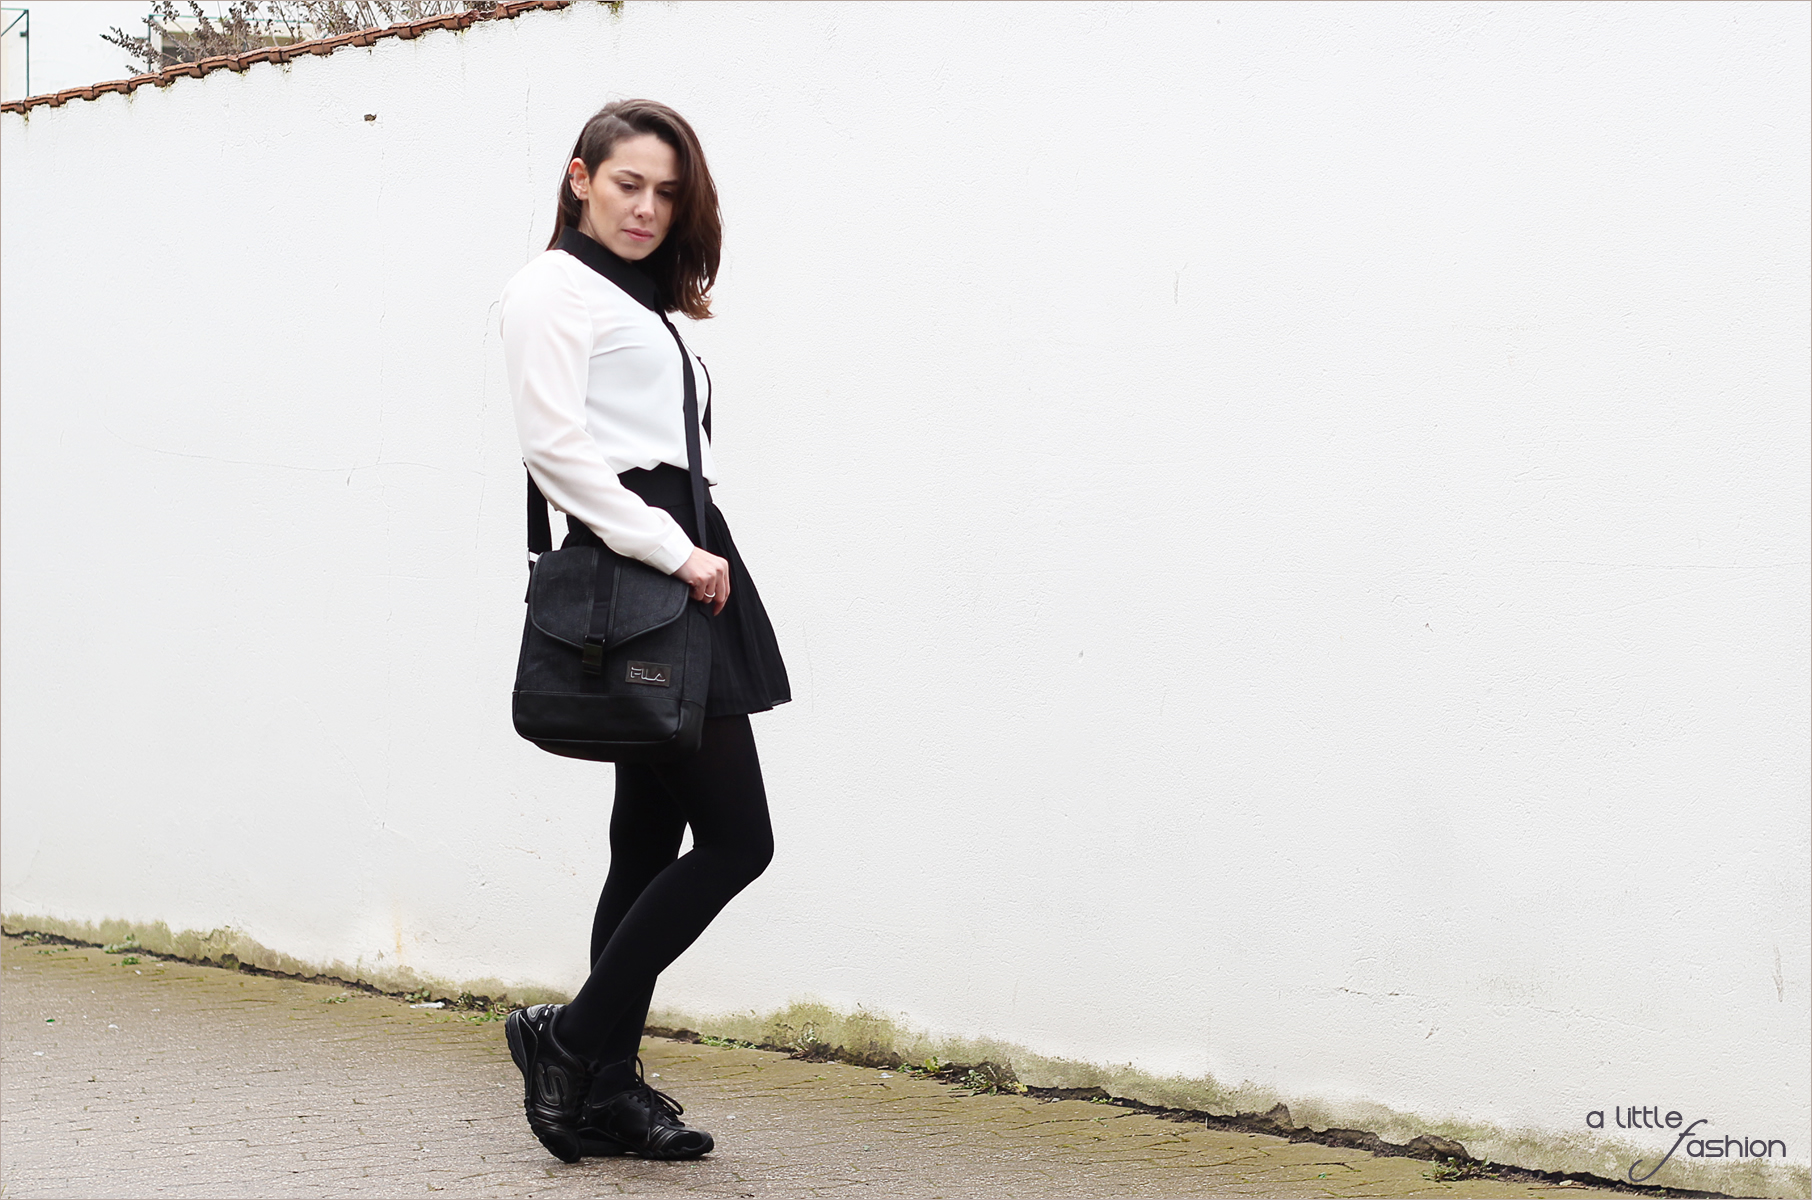 fashion_outfit_style_monochrome_bluse_rock_sneakers_messenger-bag4